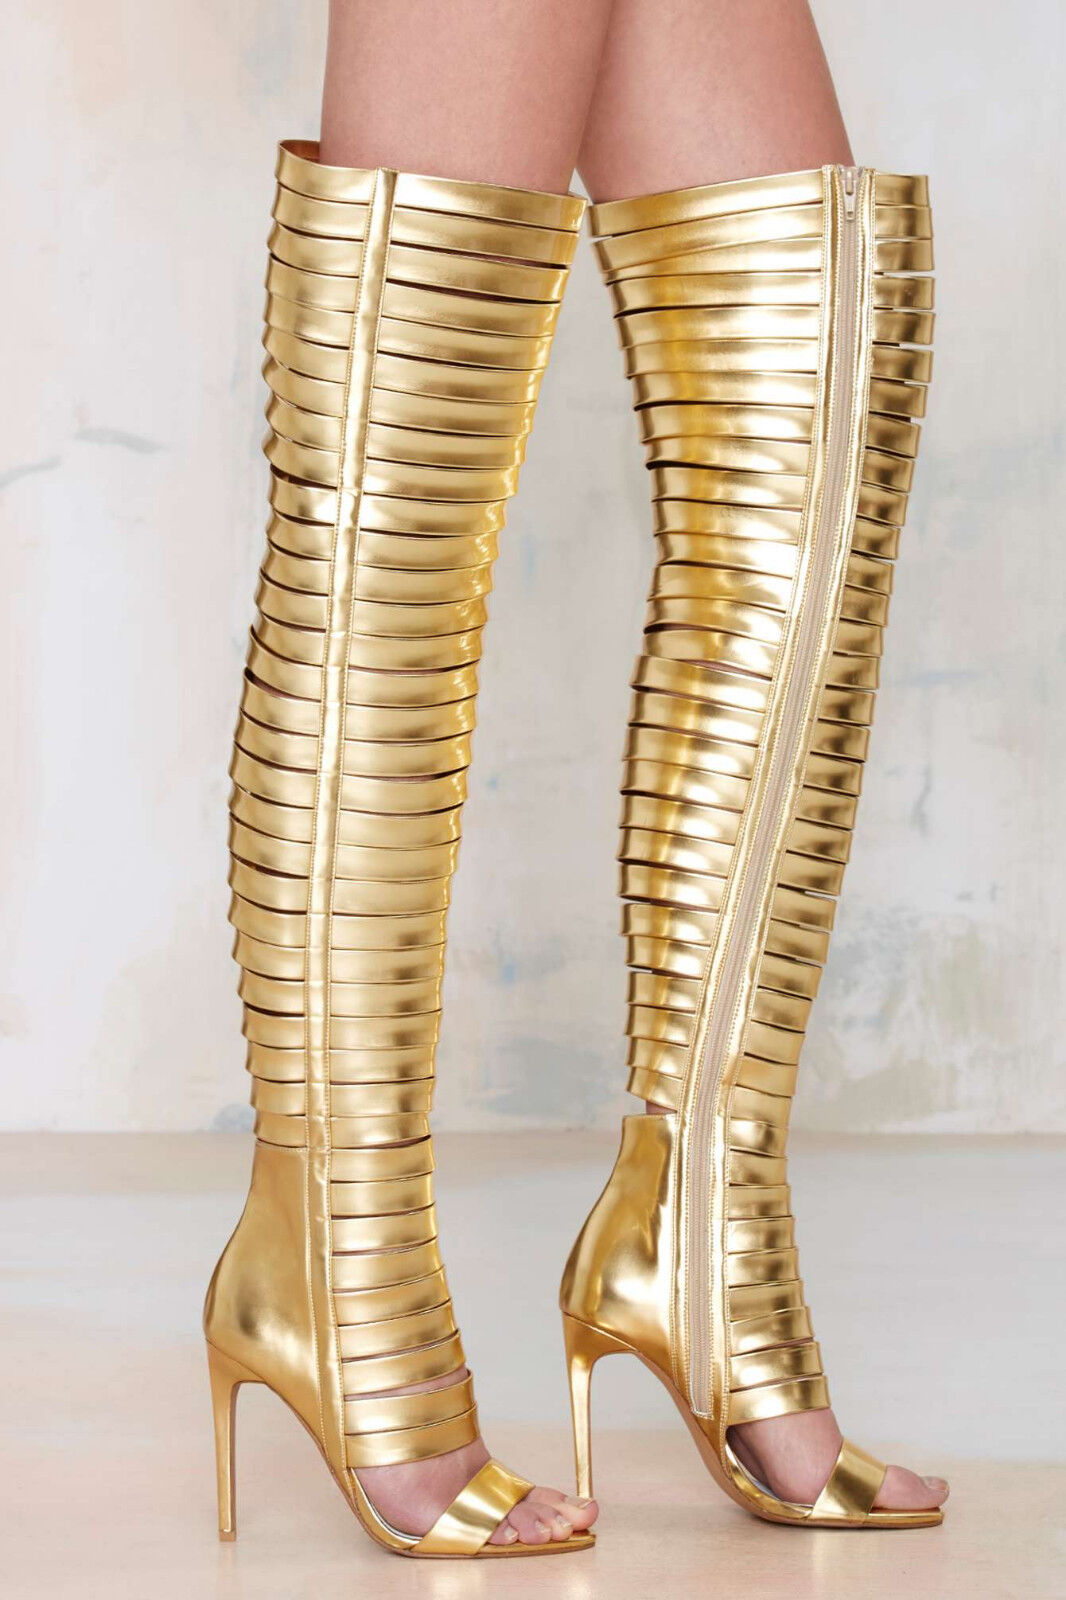 NEW JEFFREY CAMPBELL  250 oro BLINDED THIGH HIGH botas HEELS zapatos SZ 5.5